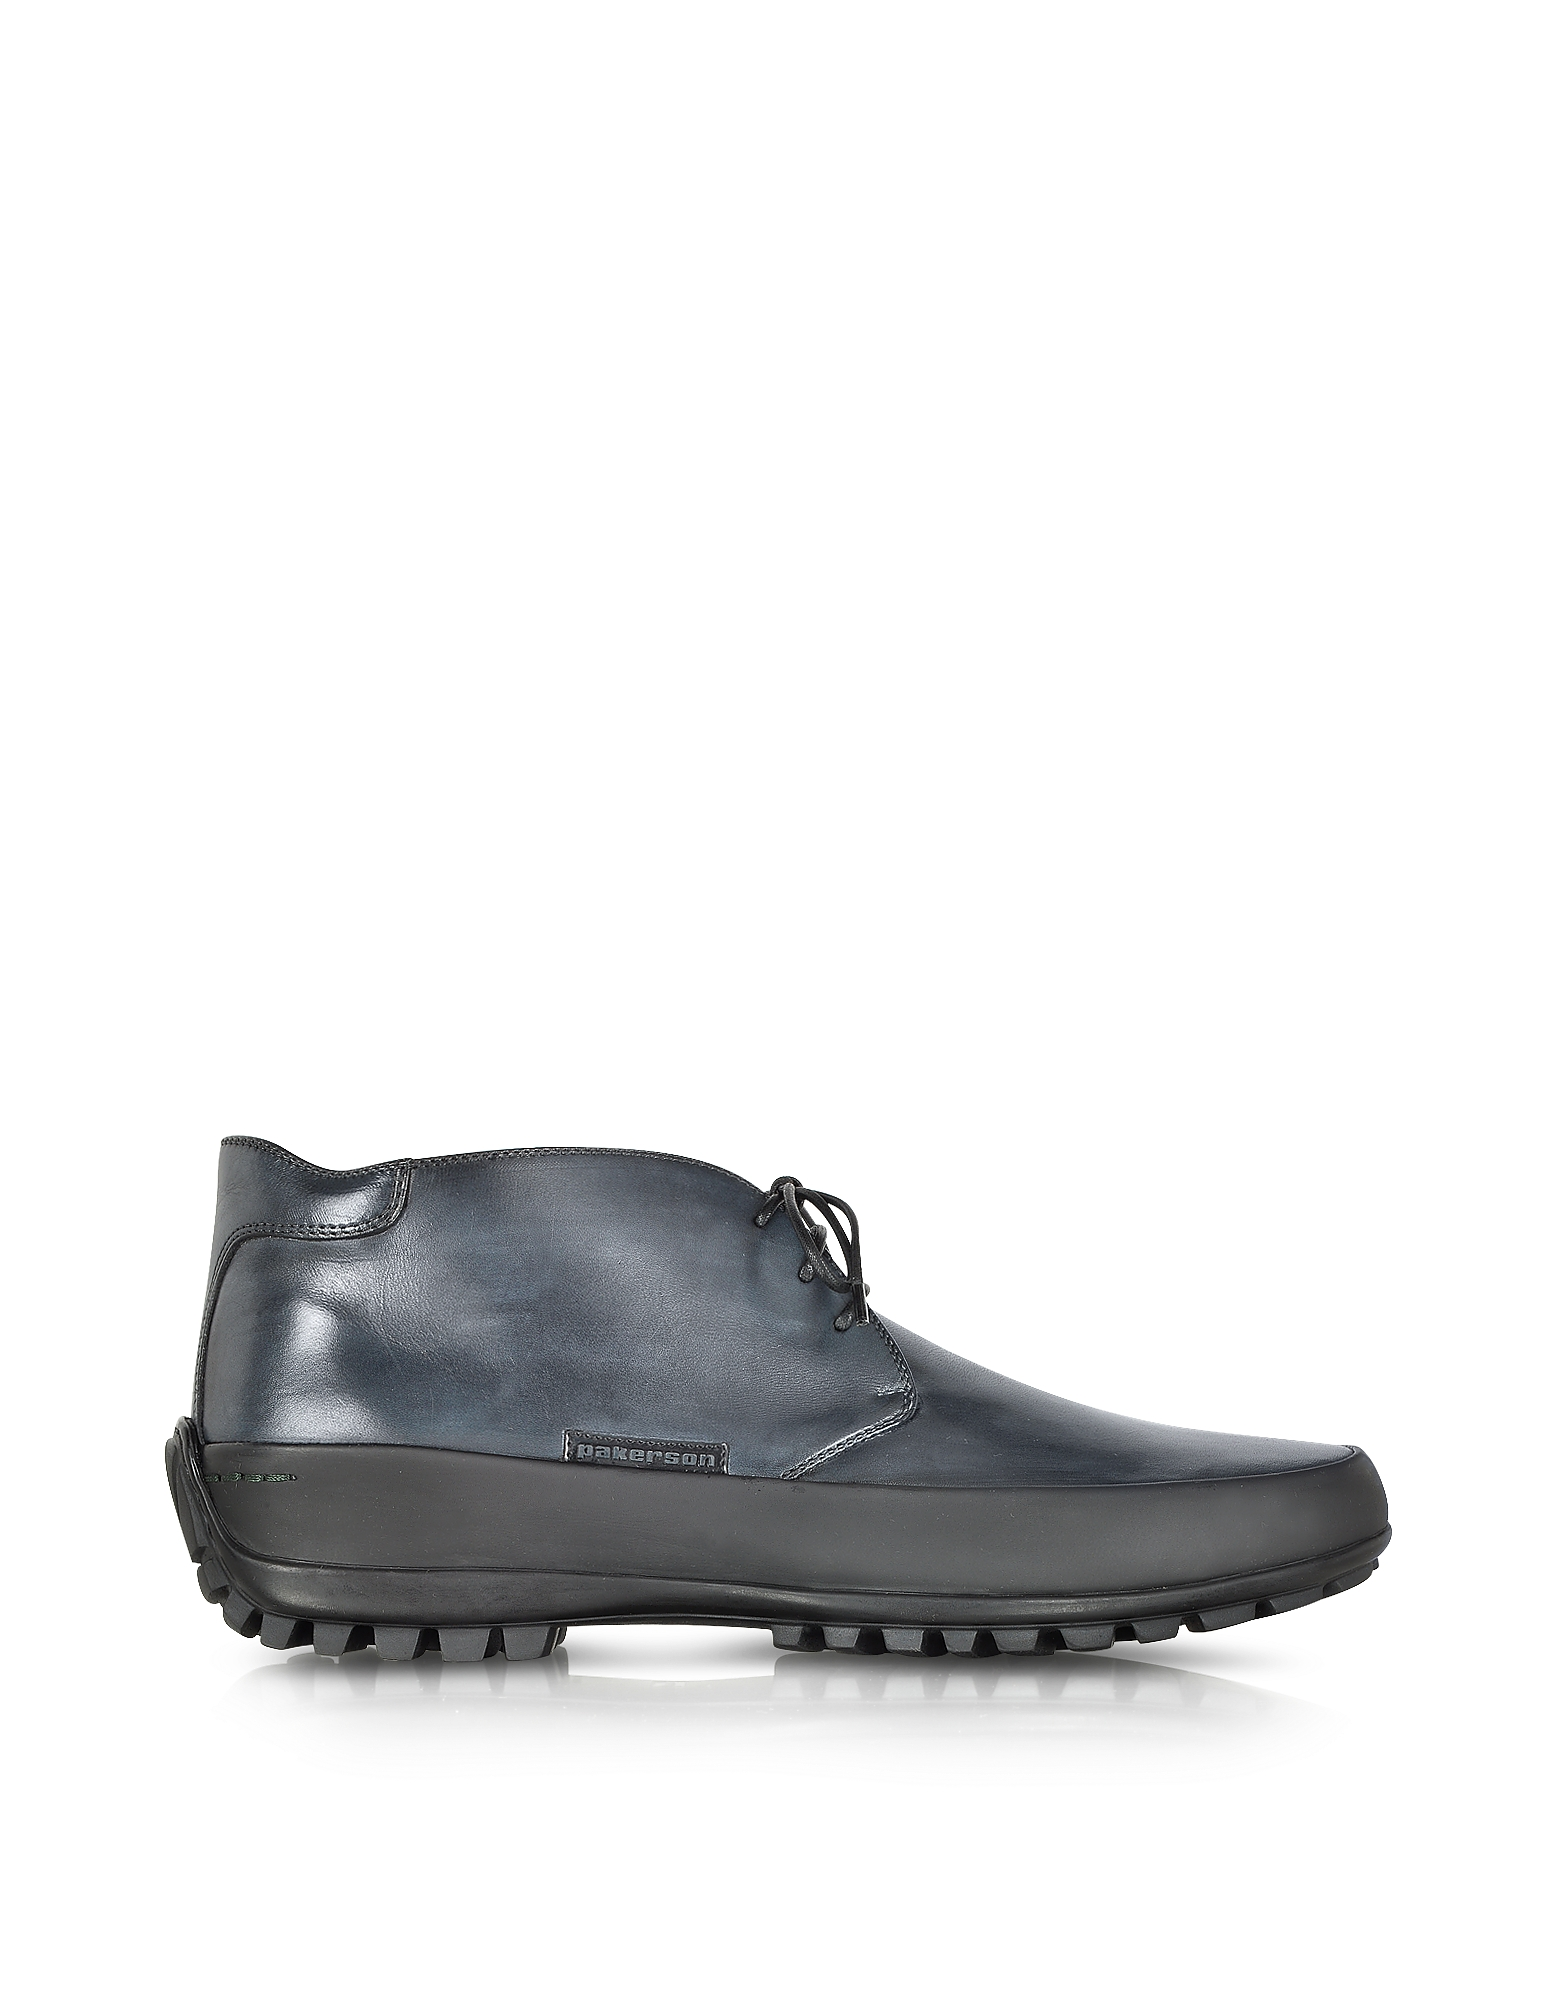 Pakerson Shoes, Smoke Blue Leather Ankle Boot w/Rubber Sole